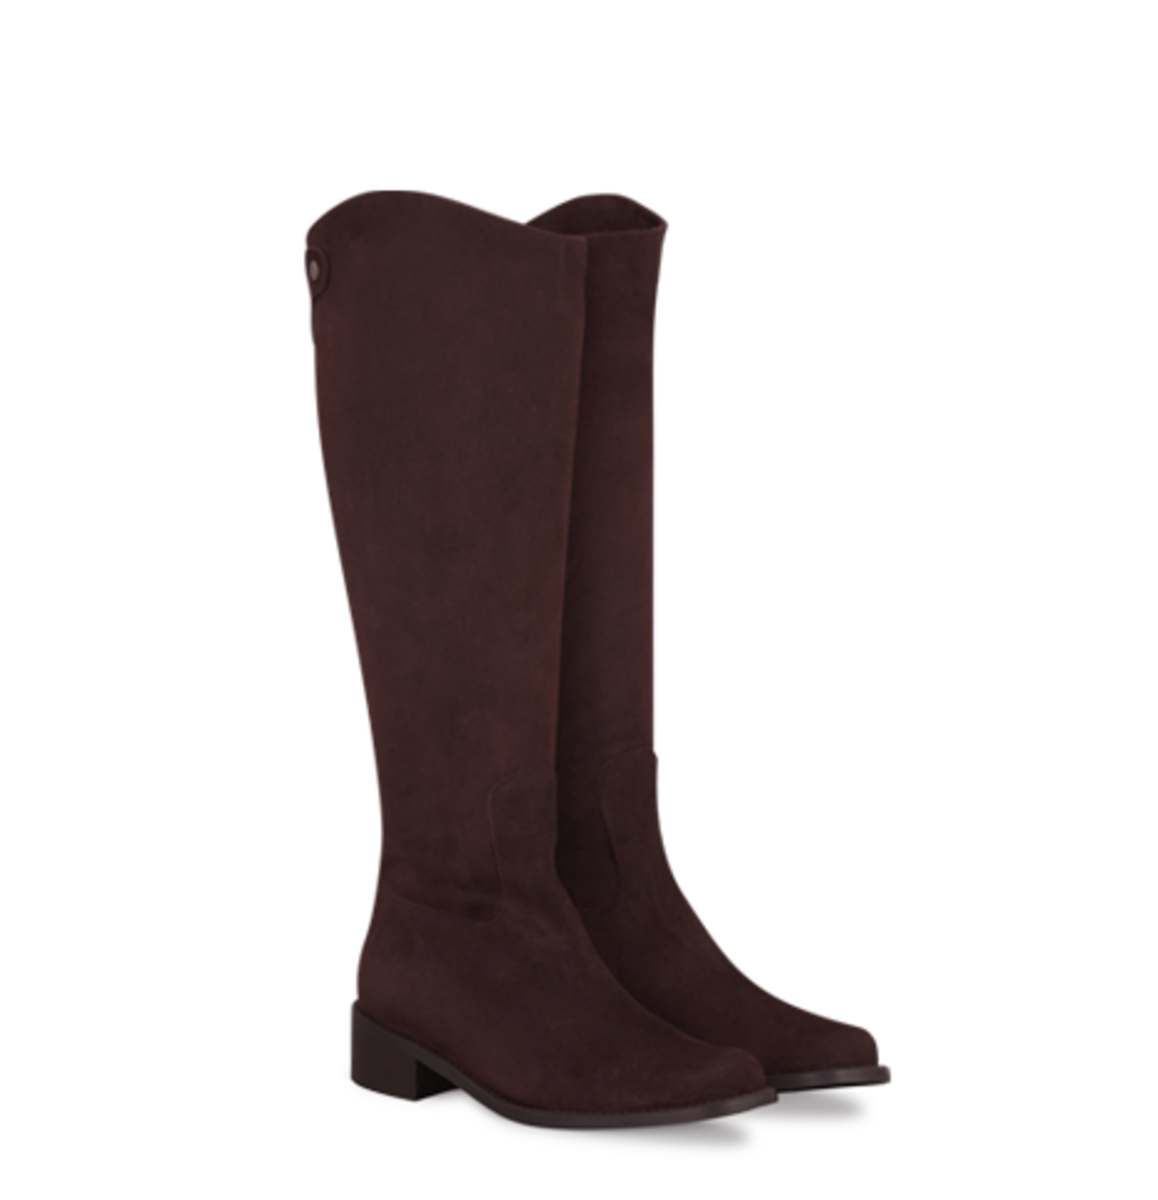 Duo's Equestrian style Seymour Brown Fitted Women's Boot, available in brown and black - $355